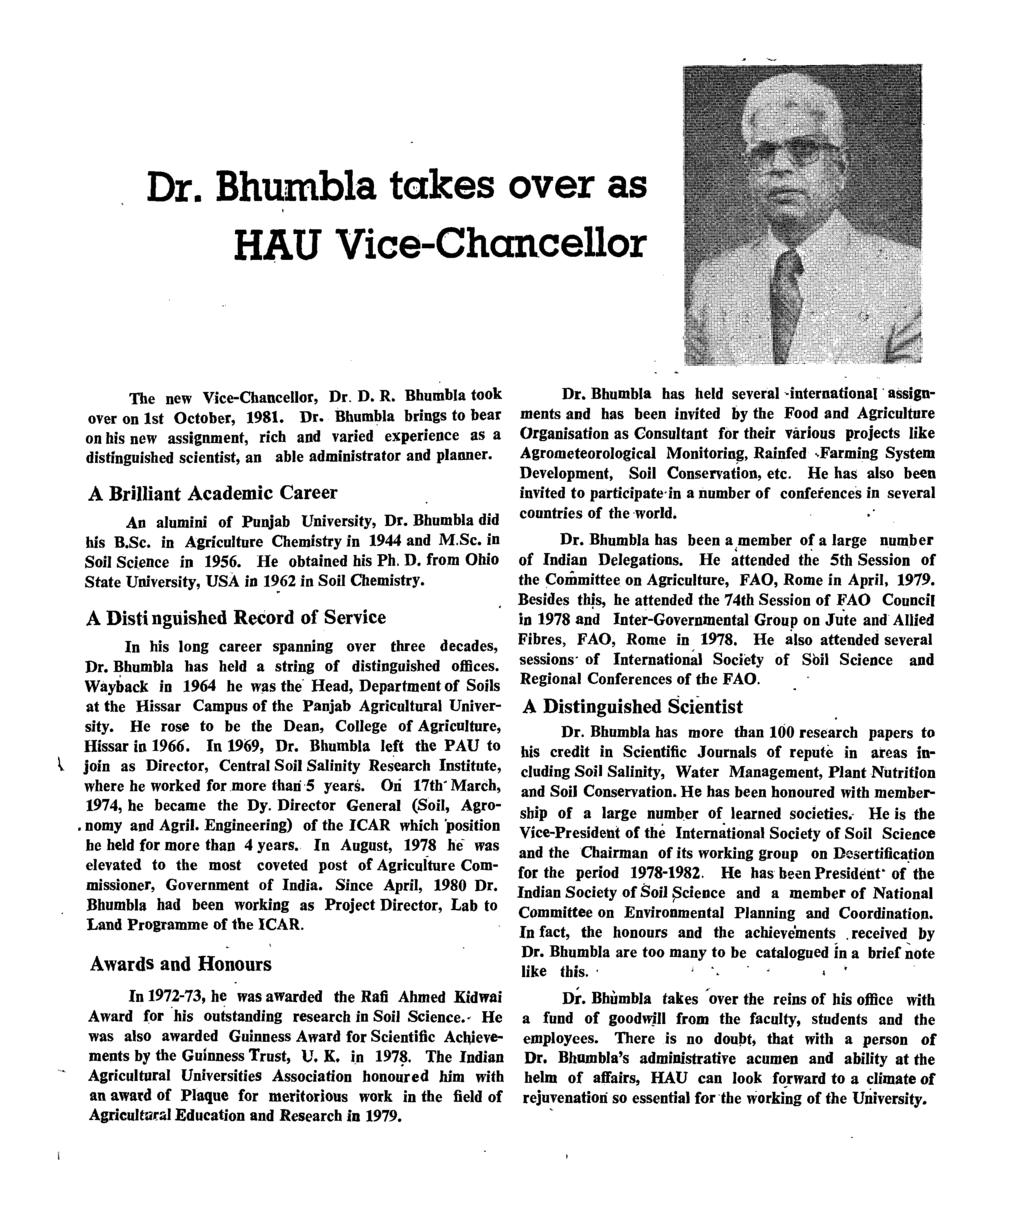 Dr. Bhumbla takes over as HAU Vice-Chancellor The new Vice-Chancellor, Dr,